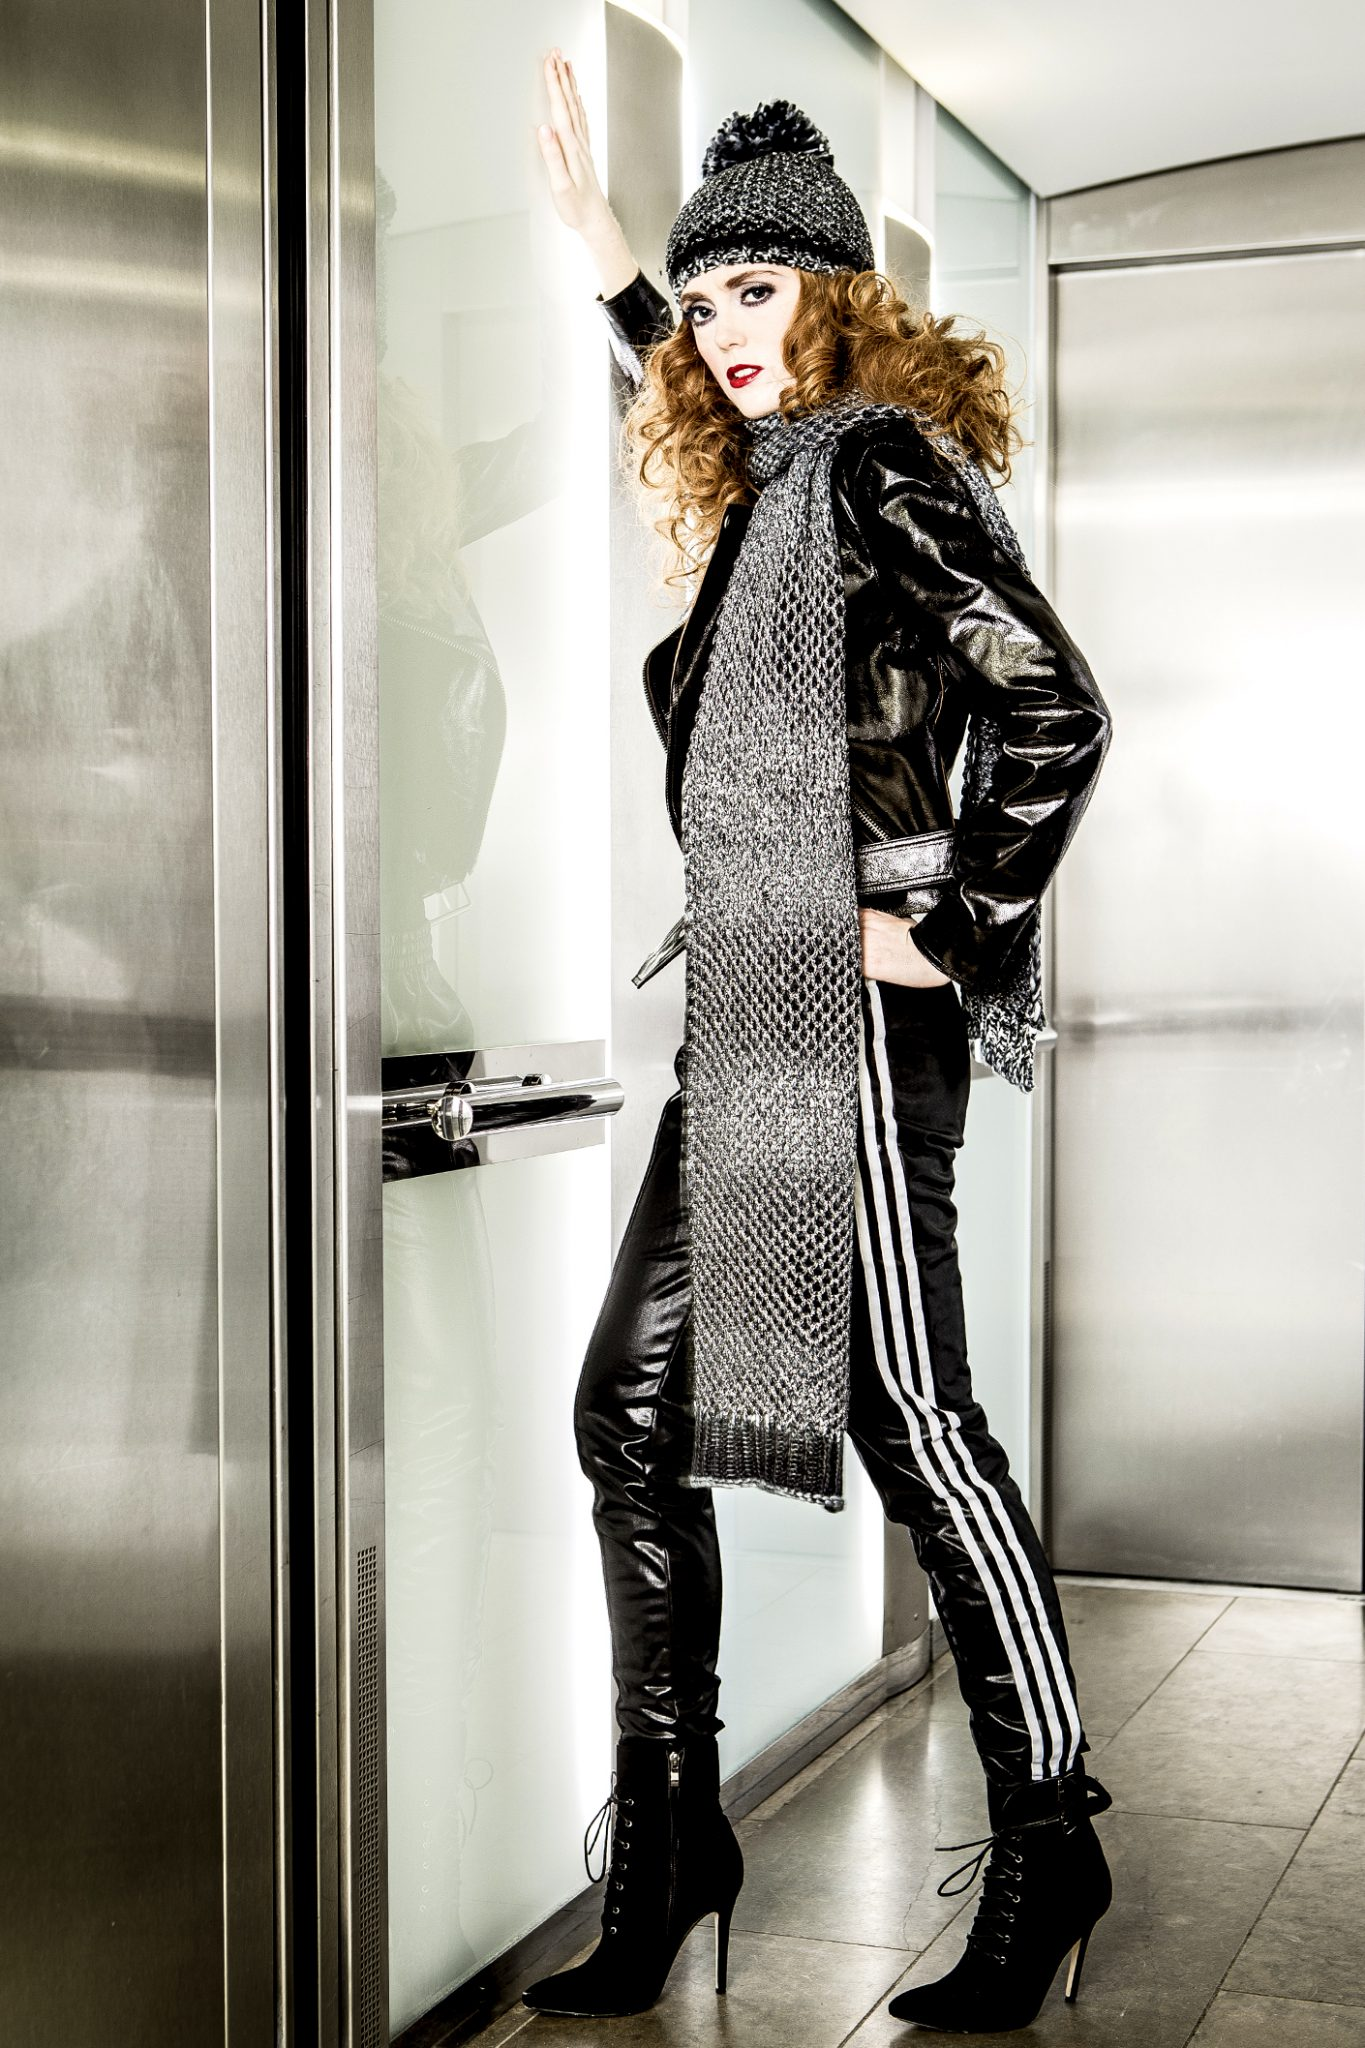 high-fashion-womenswear-photography-on-location-in-manchester